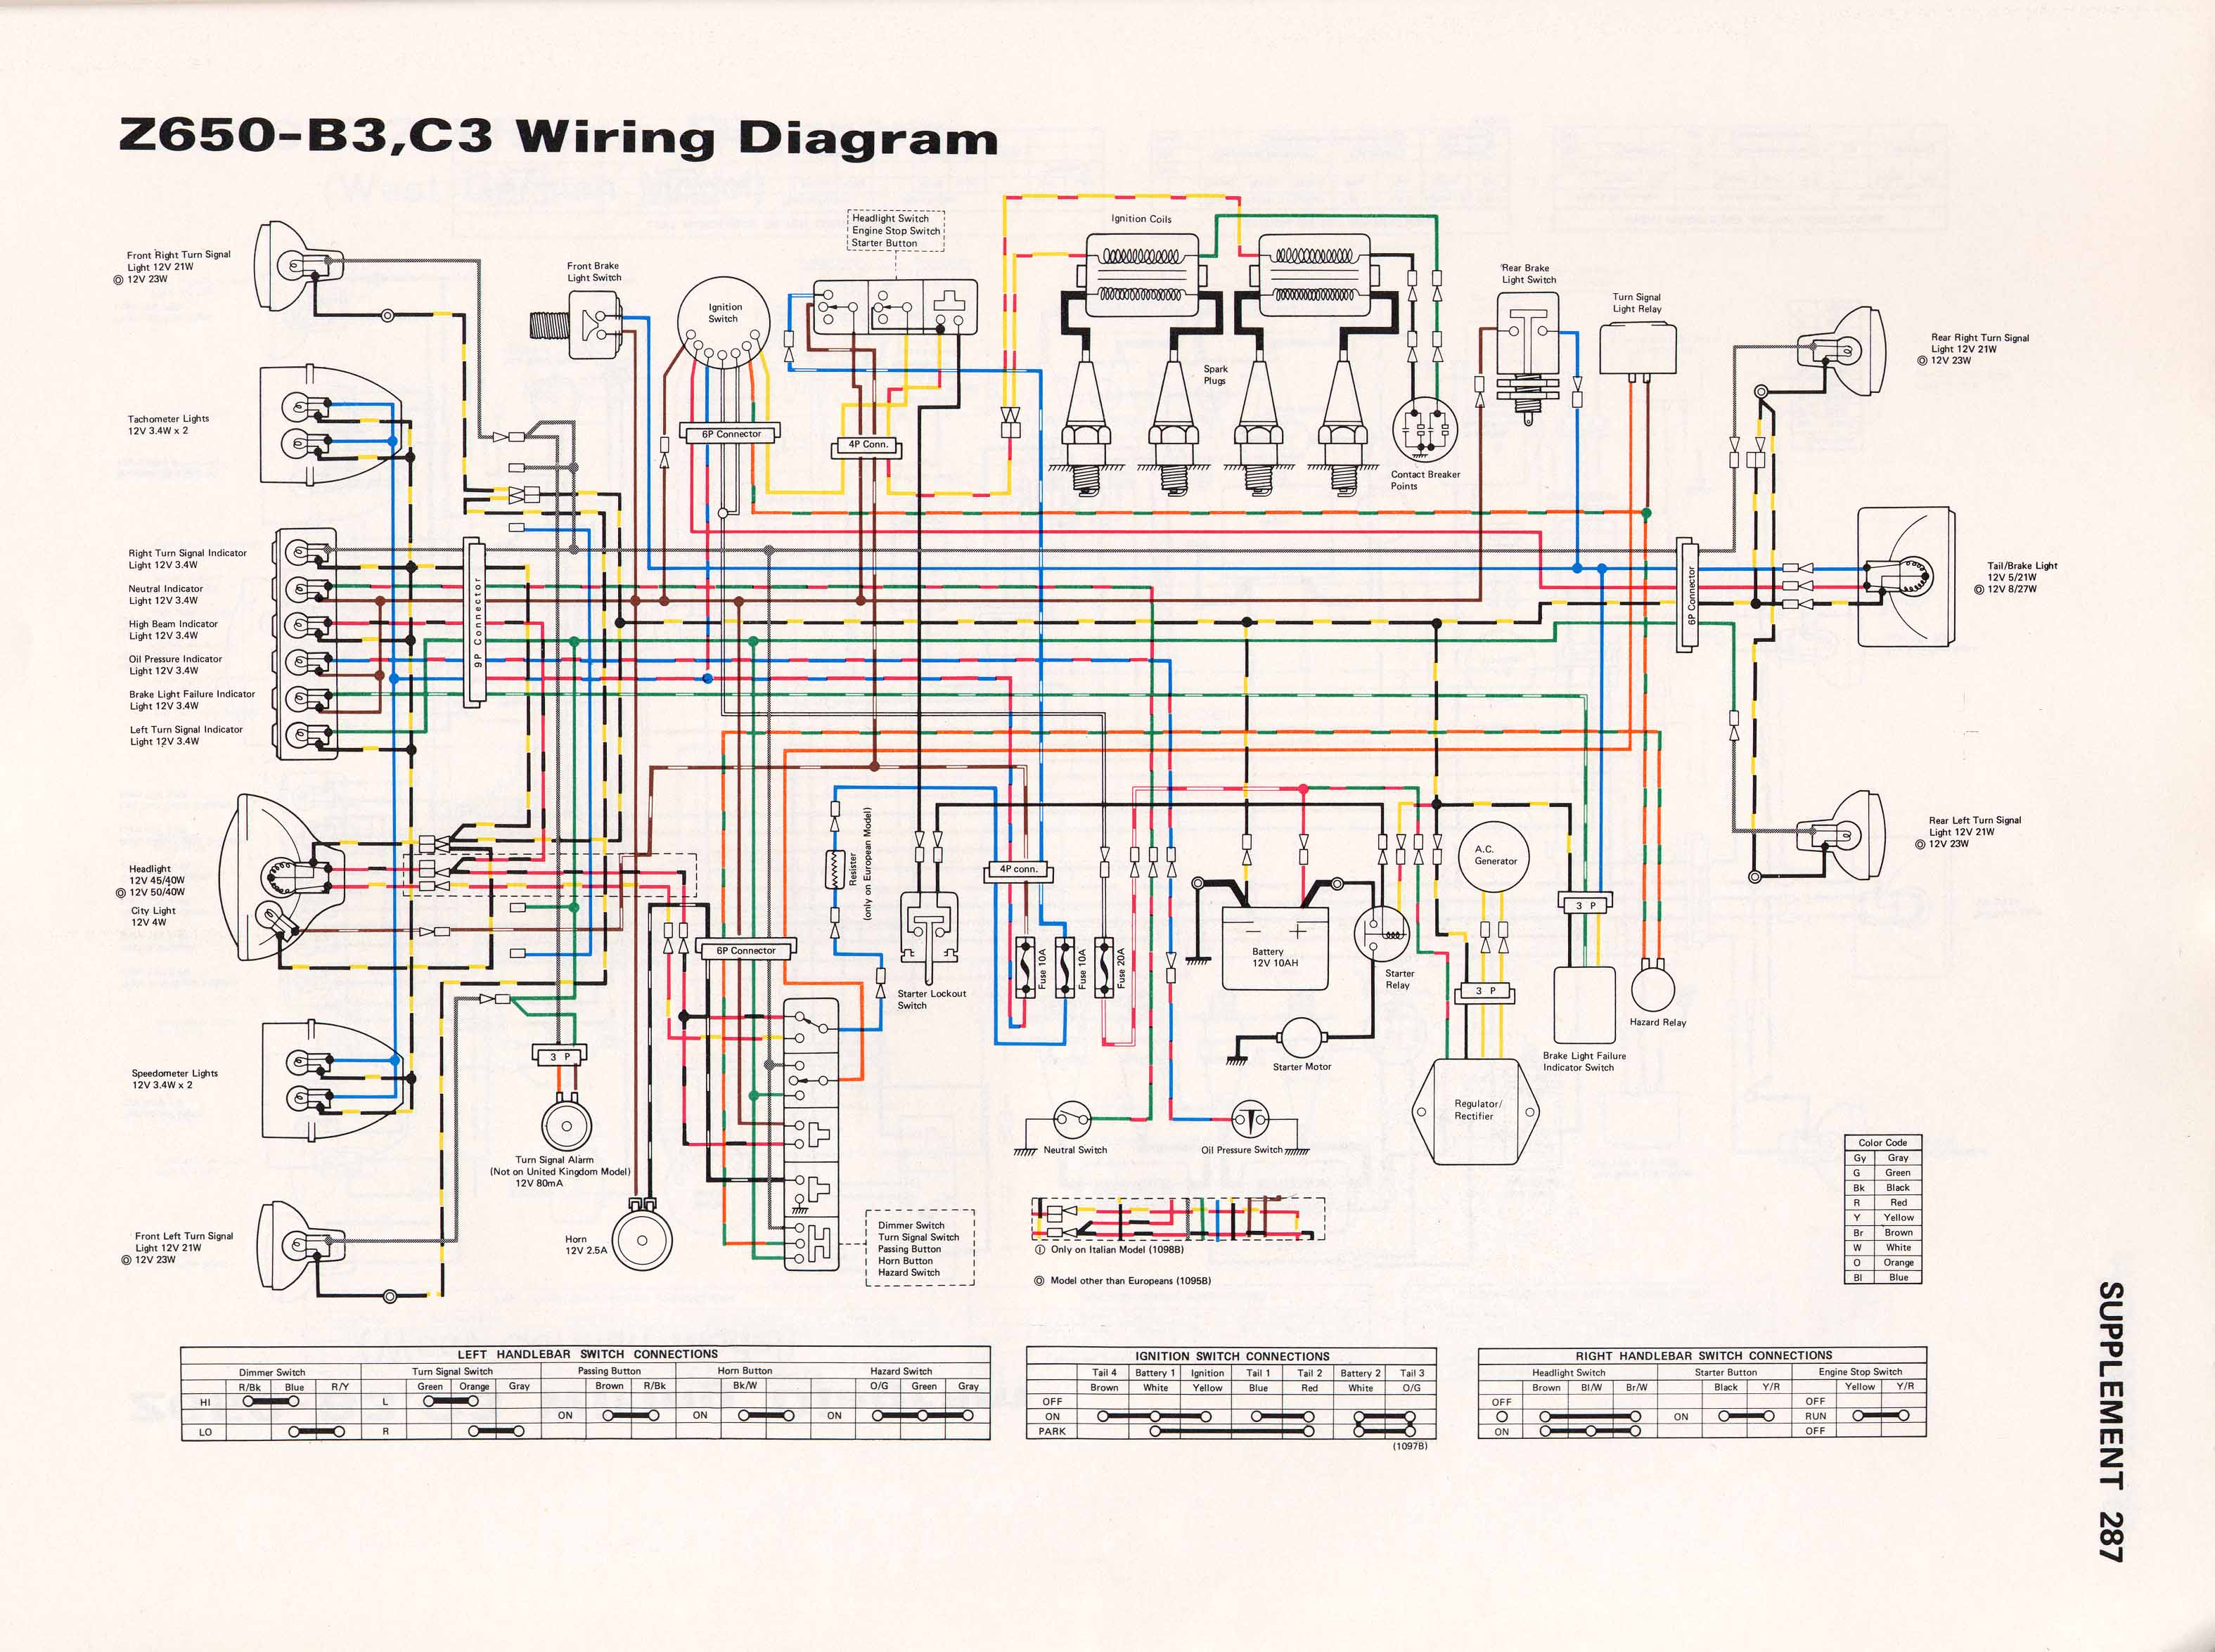 Kz650info Wiring Diagrams Schematic Car Diagram Page 81 Z650 B3